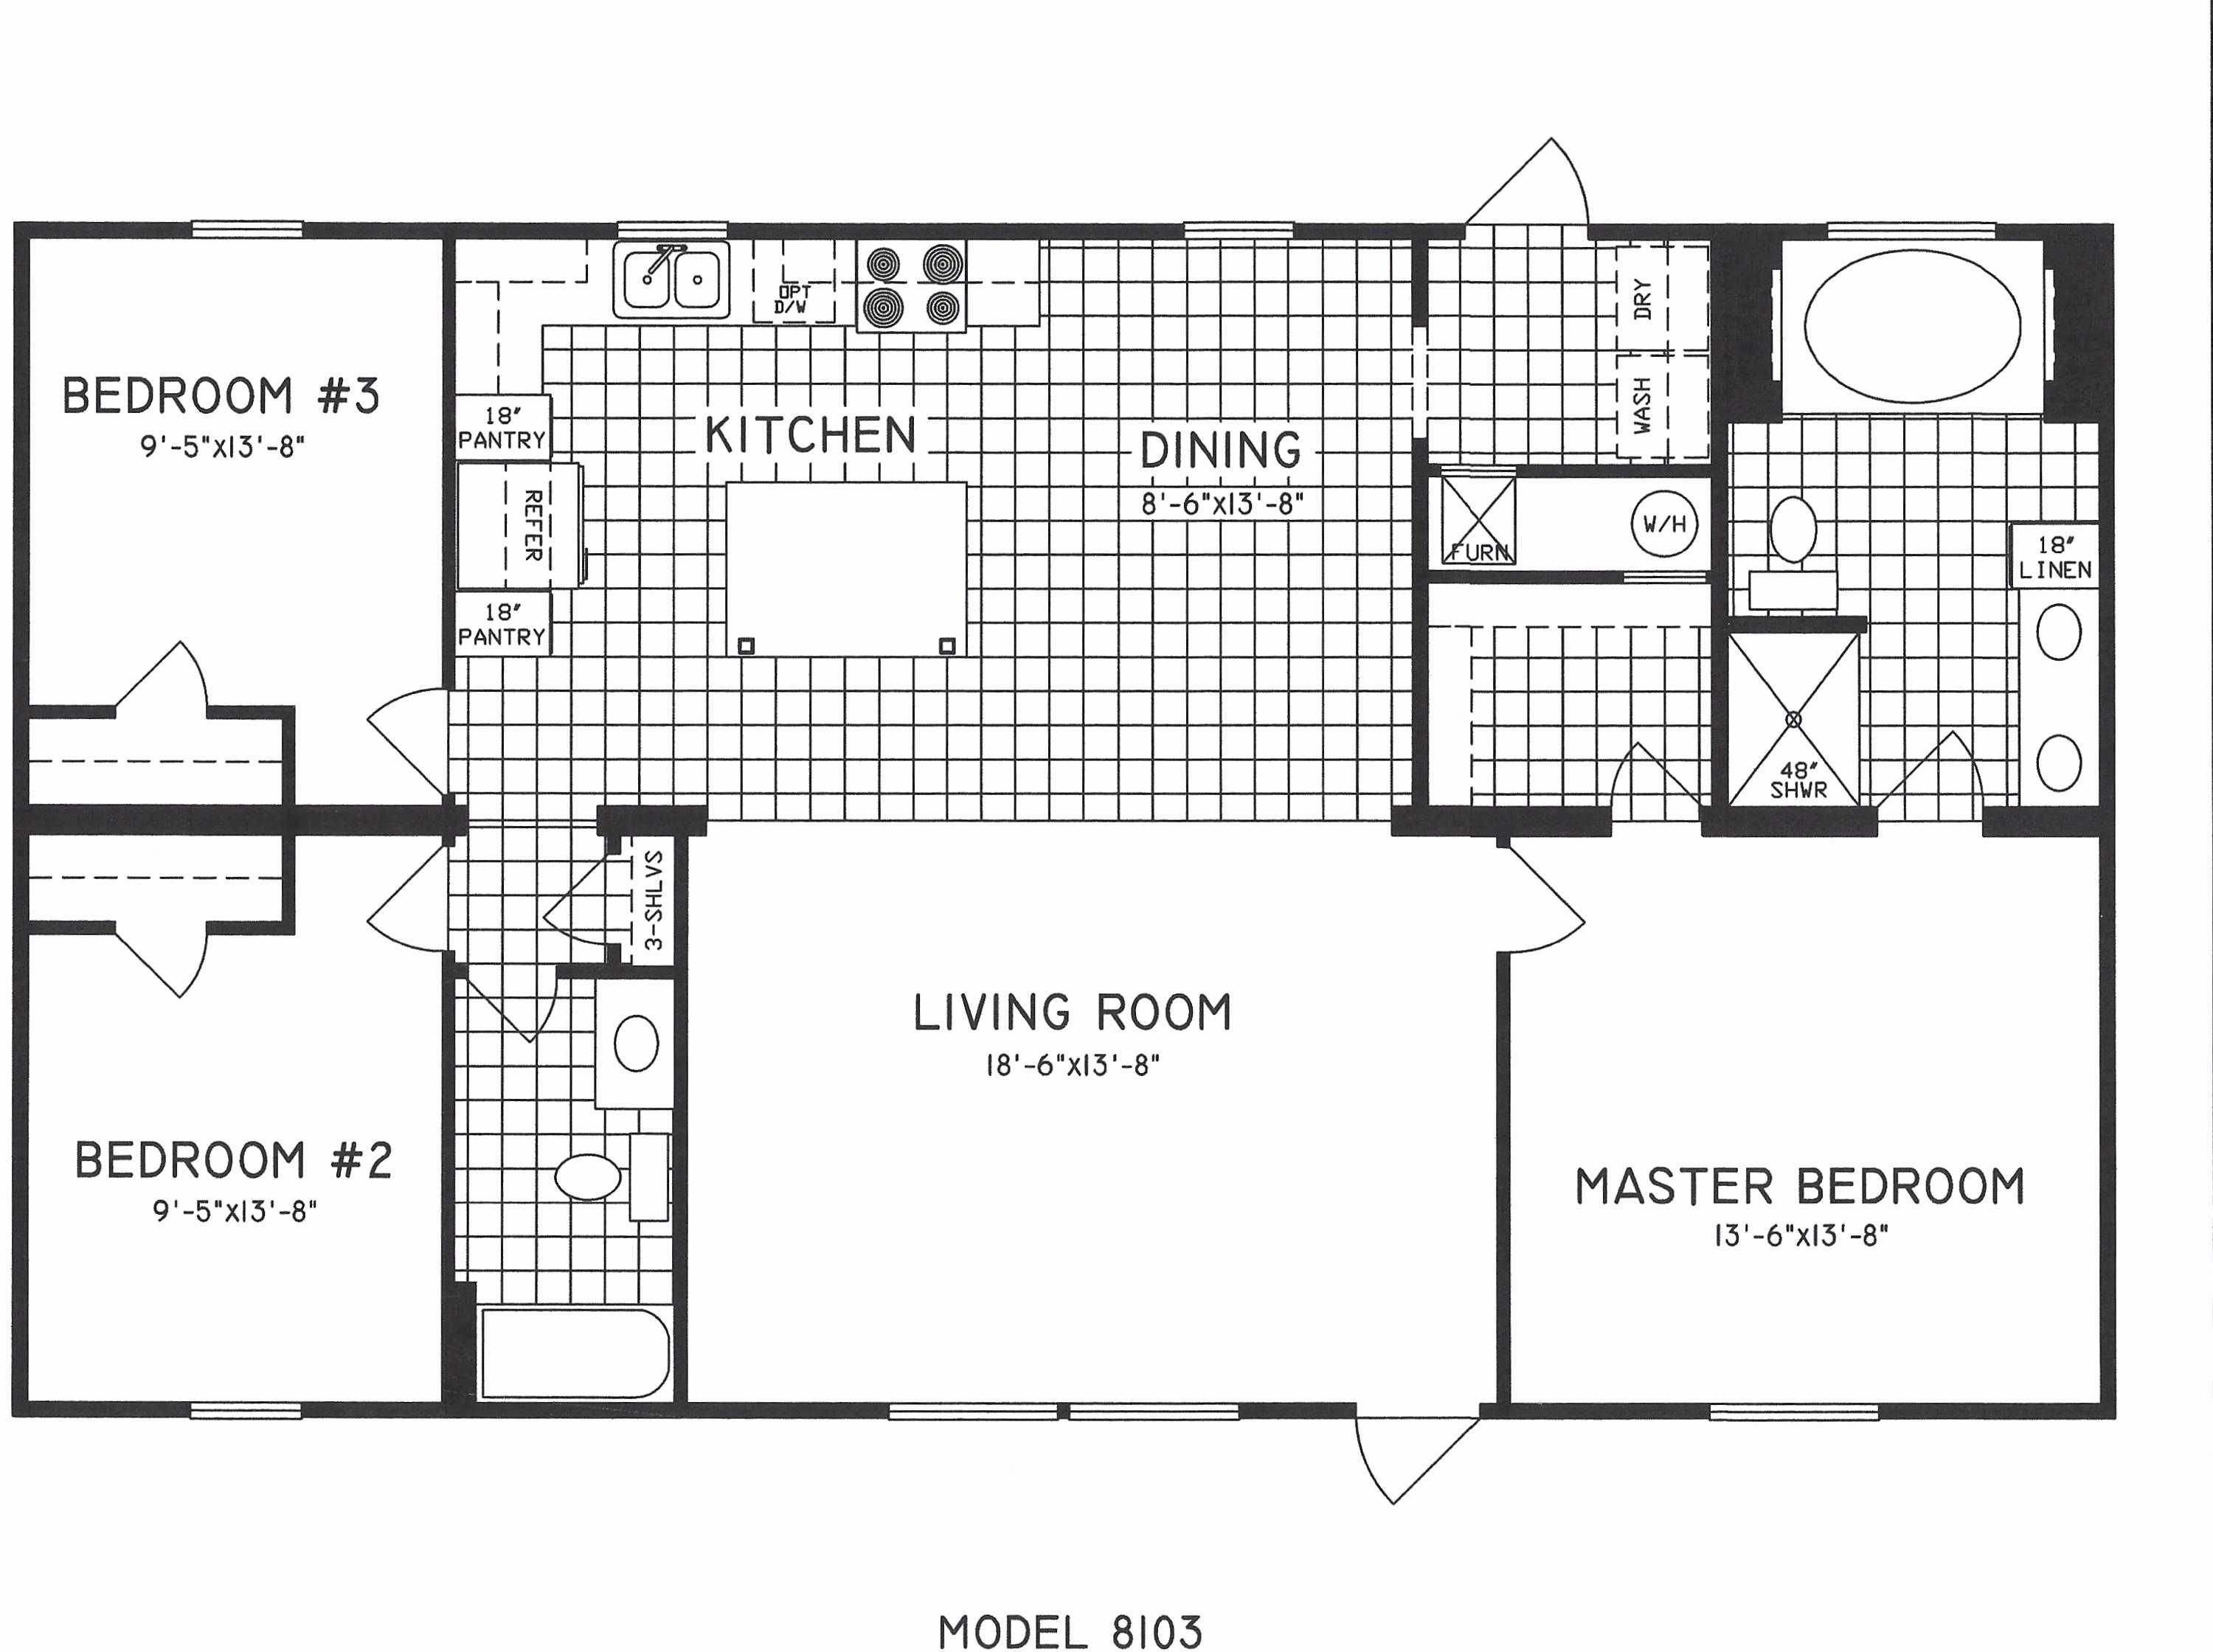 Unique Farmhouse Mansion Floor Plans | Home Decor Ideas 2018 ... on italianate mansion, tudor mansion, vintage mansion, villa mansion, snoop dogg mansion, cottage mansion, chateau mansion, homestead mansion, island mansion, georgian mansion, igloo mansion, lodge mansion, family mansion, victorian mansion, romantic mansion, garden mansion, plantation mansion, cabin mansion, castle mansion,